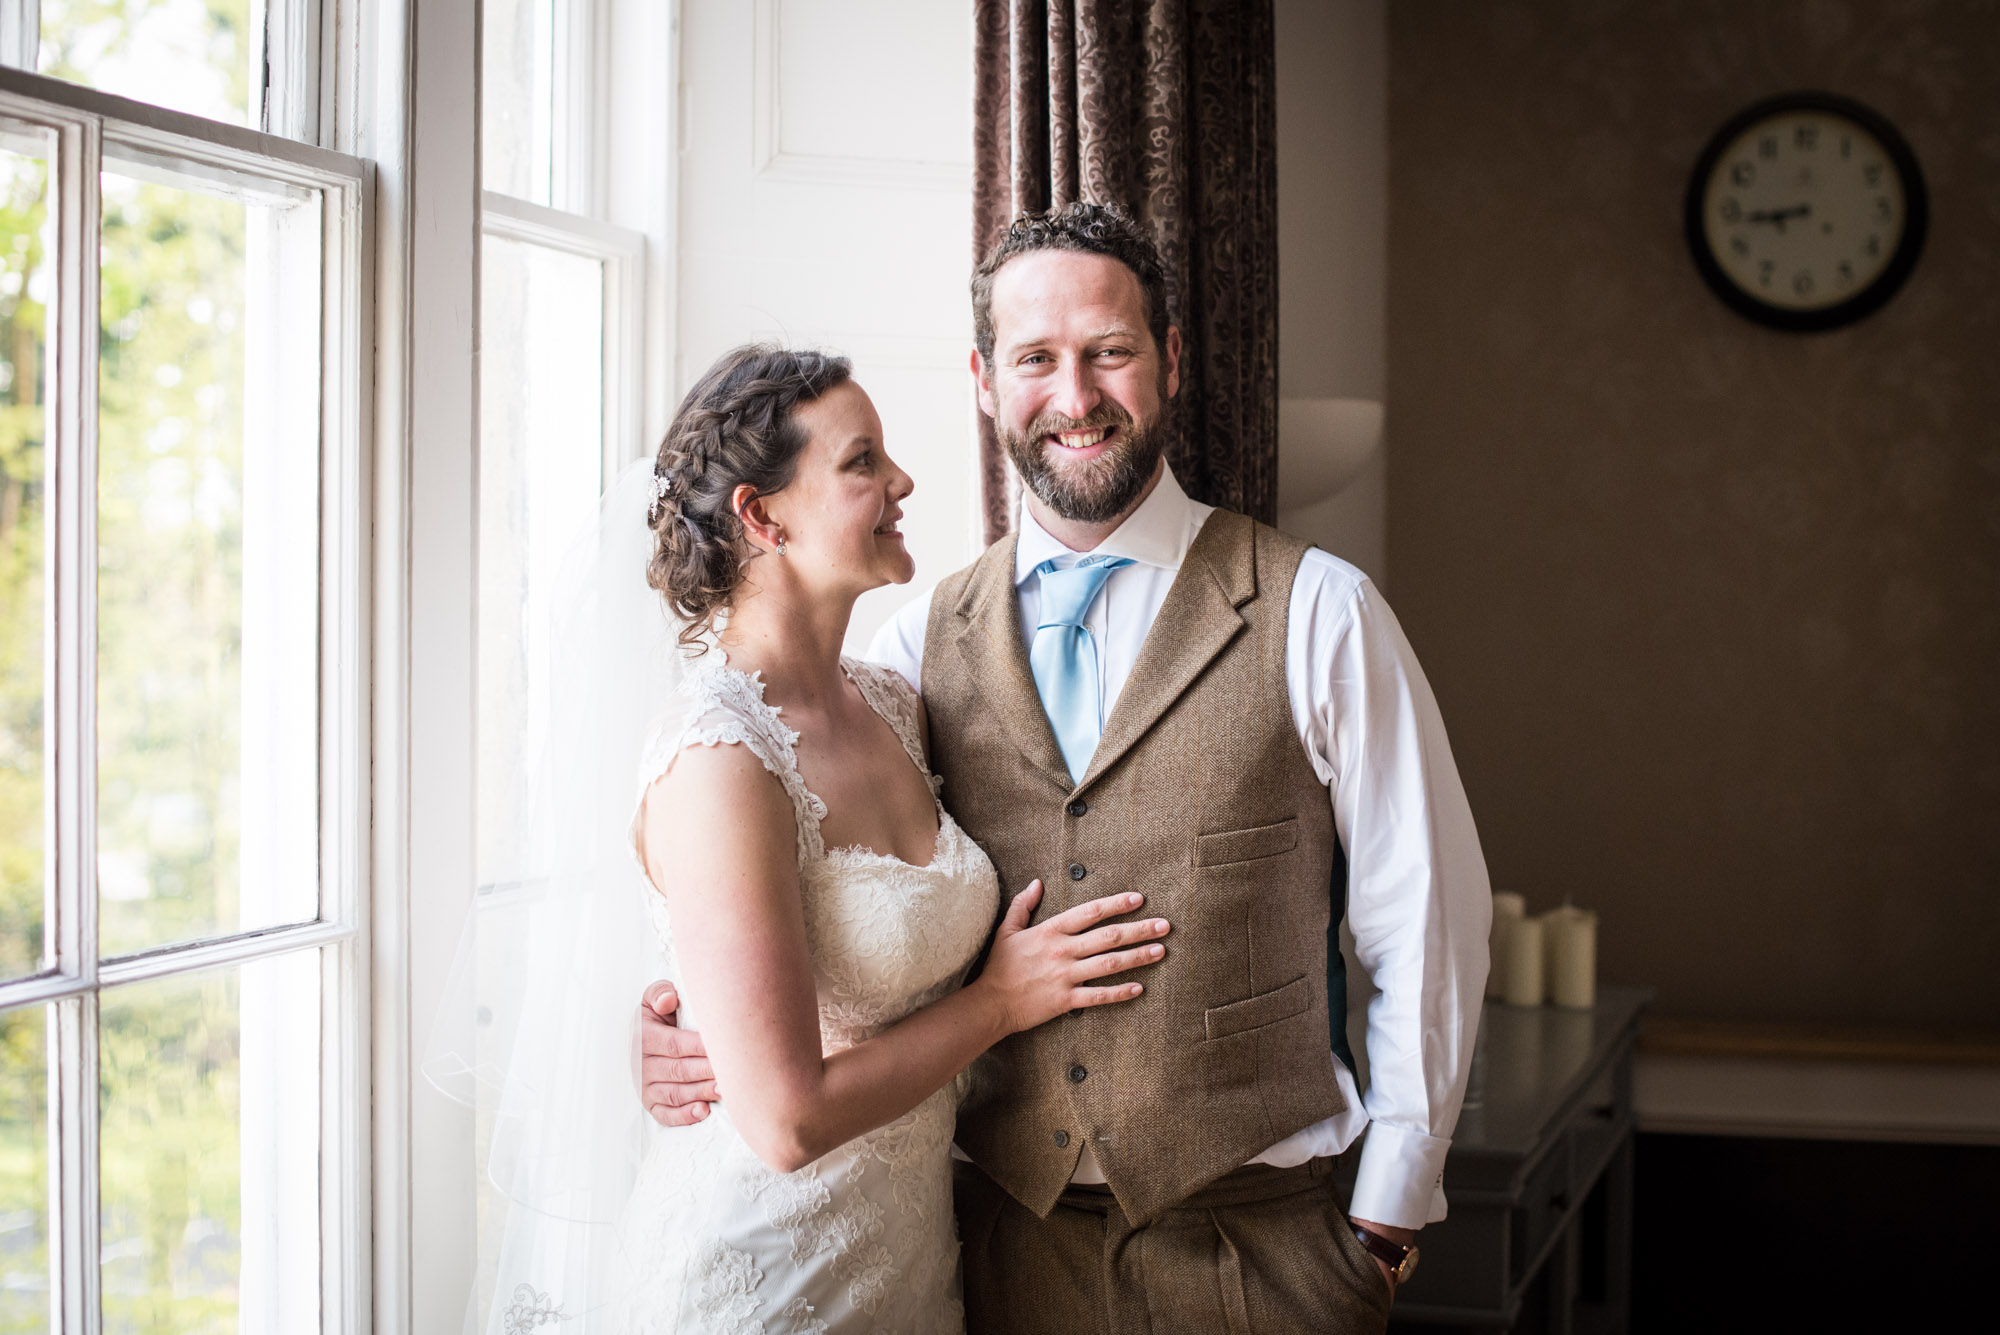 Cirencester Wedding Photography – Fran & Will